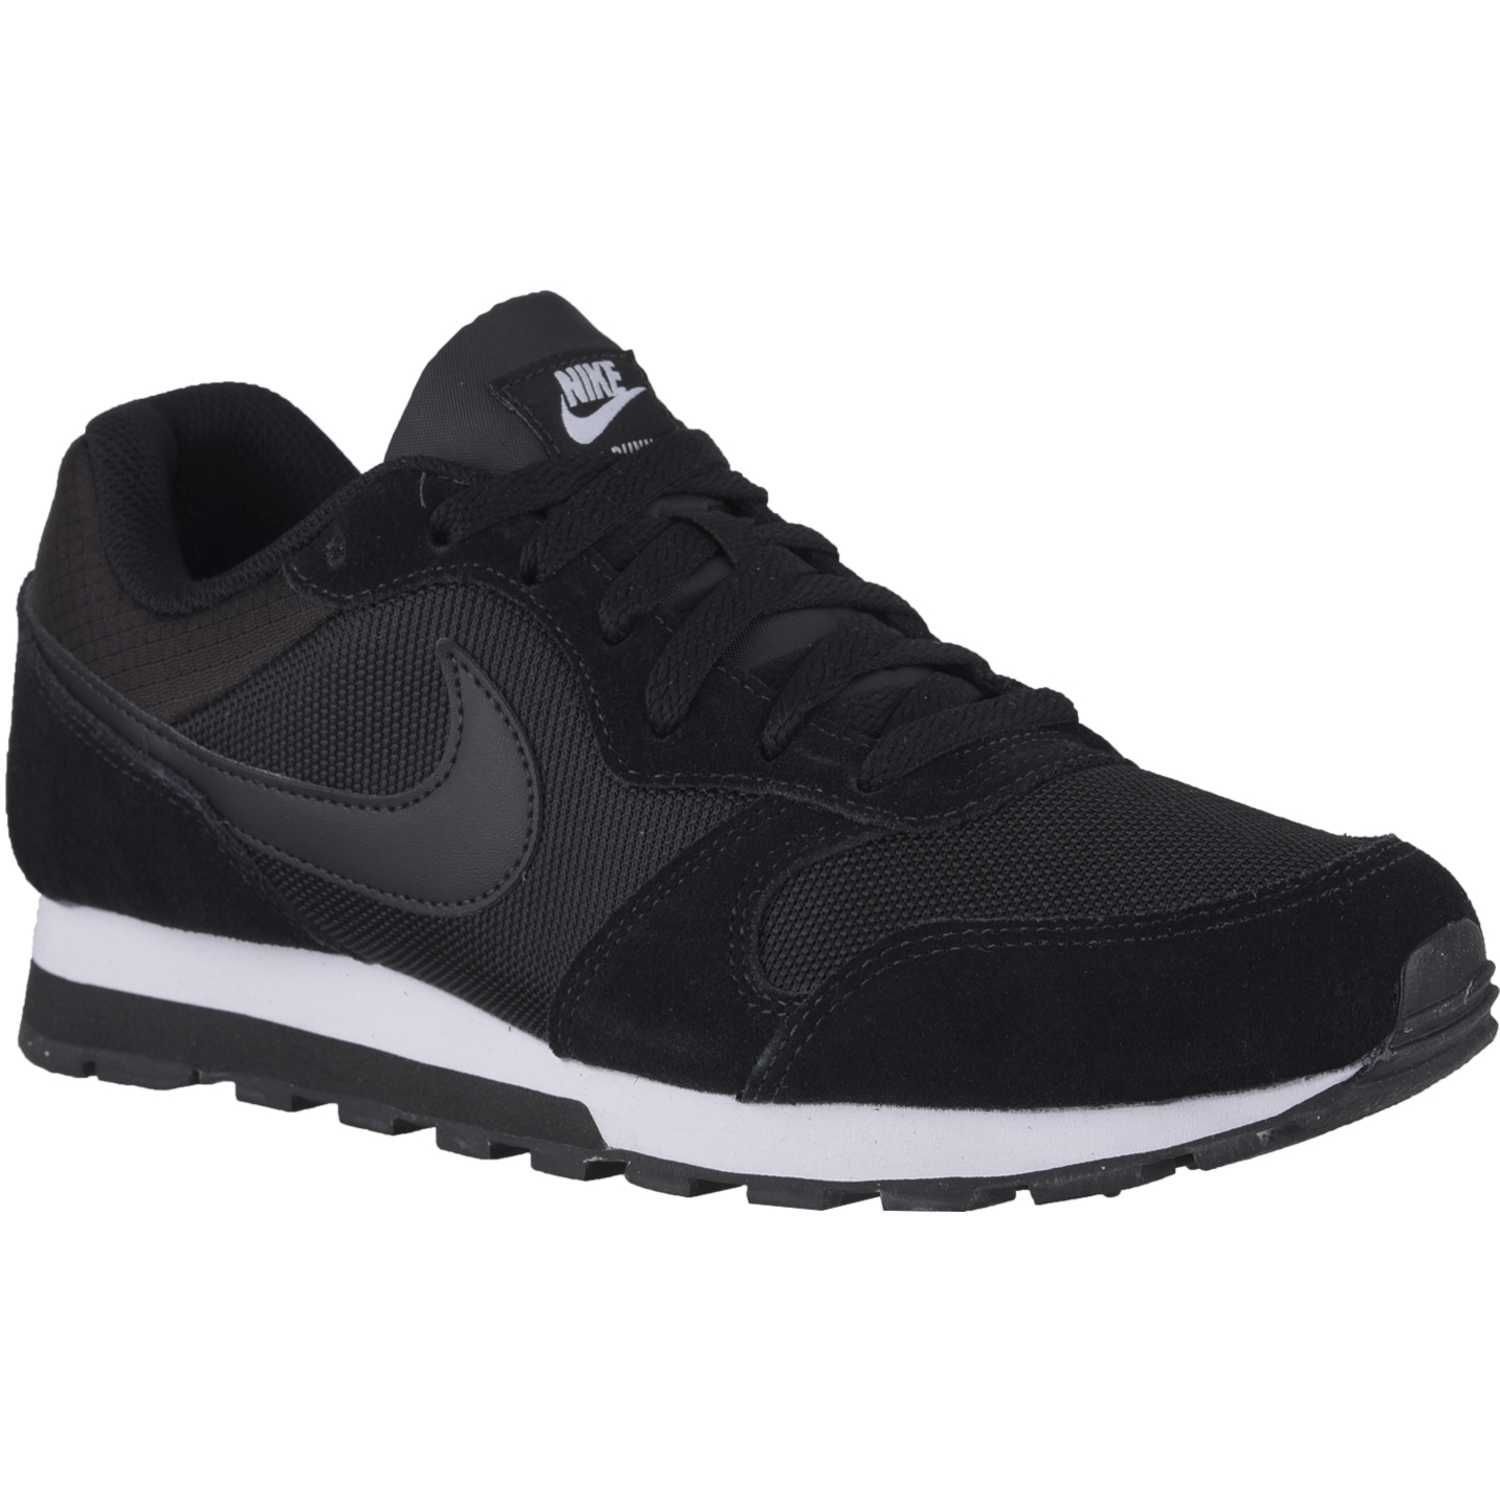 zapatillas nike md runner 2 negro blanco